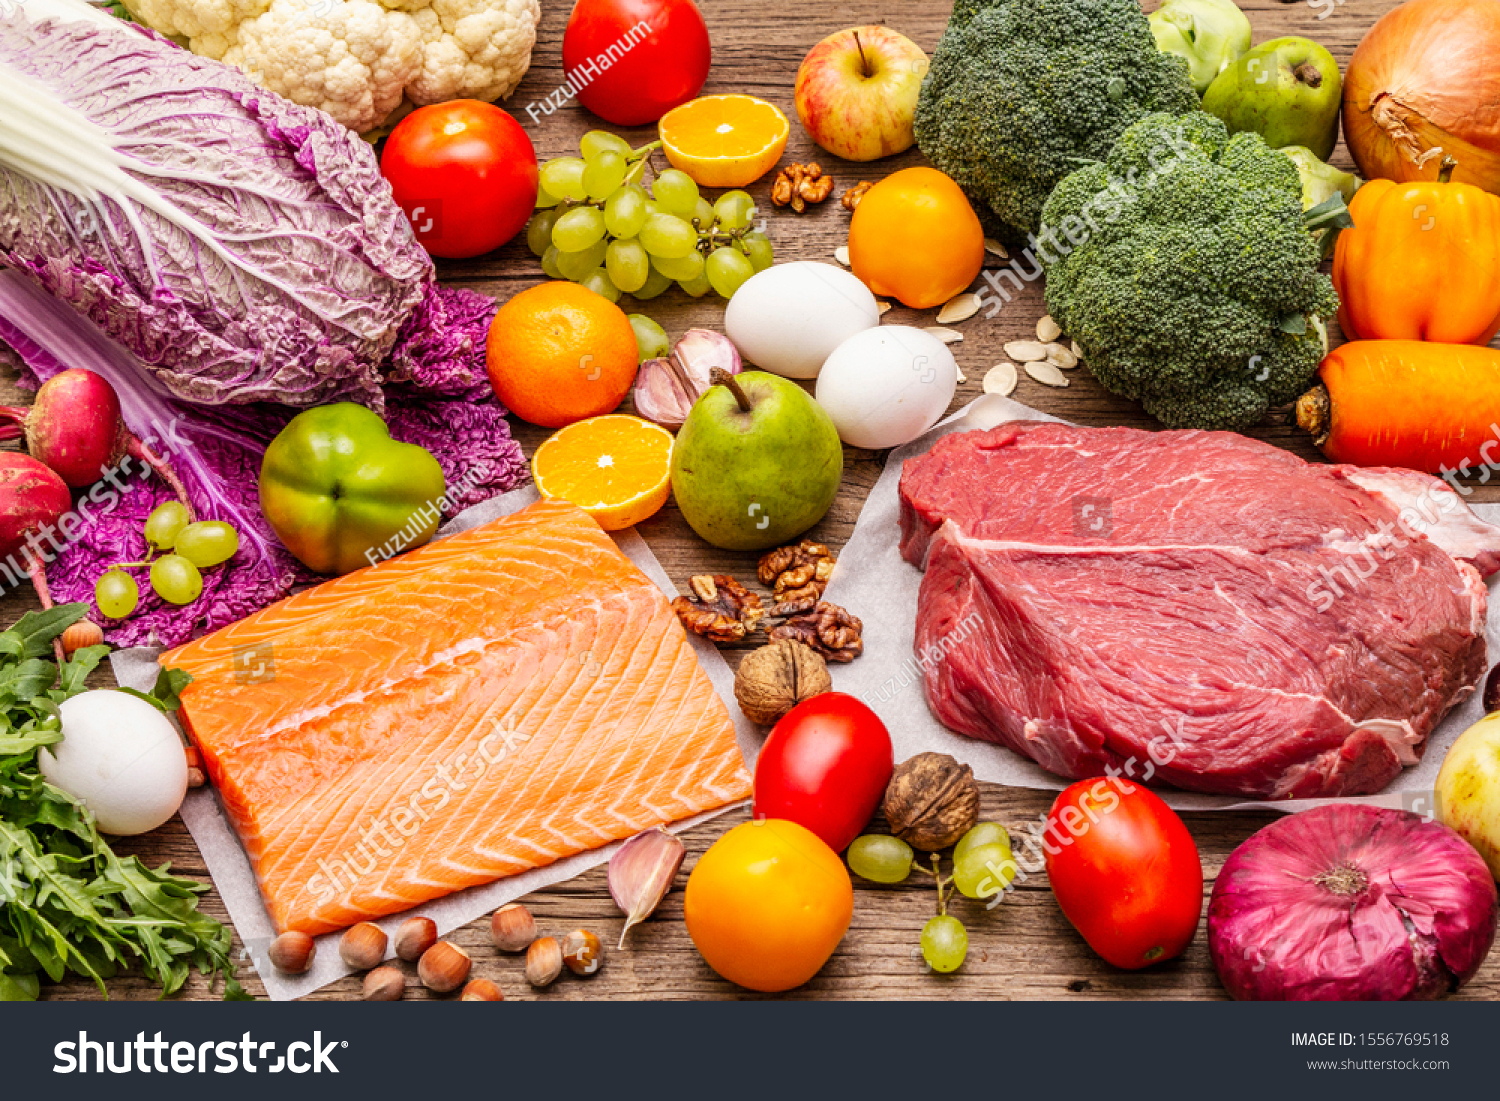 Trending paleo/pegan diet. Healthy balanced food concept. Set of fresh products, raw meat, salmon, vegetables and fruits. Old wooden boards background #1556769518